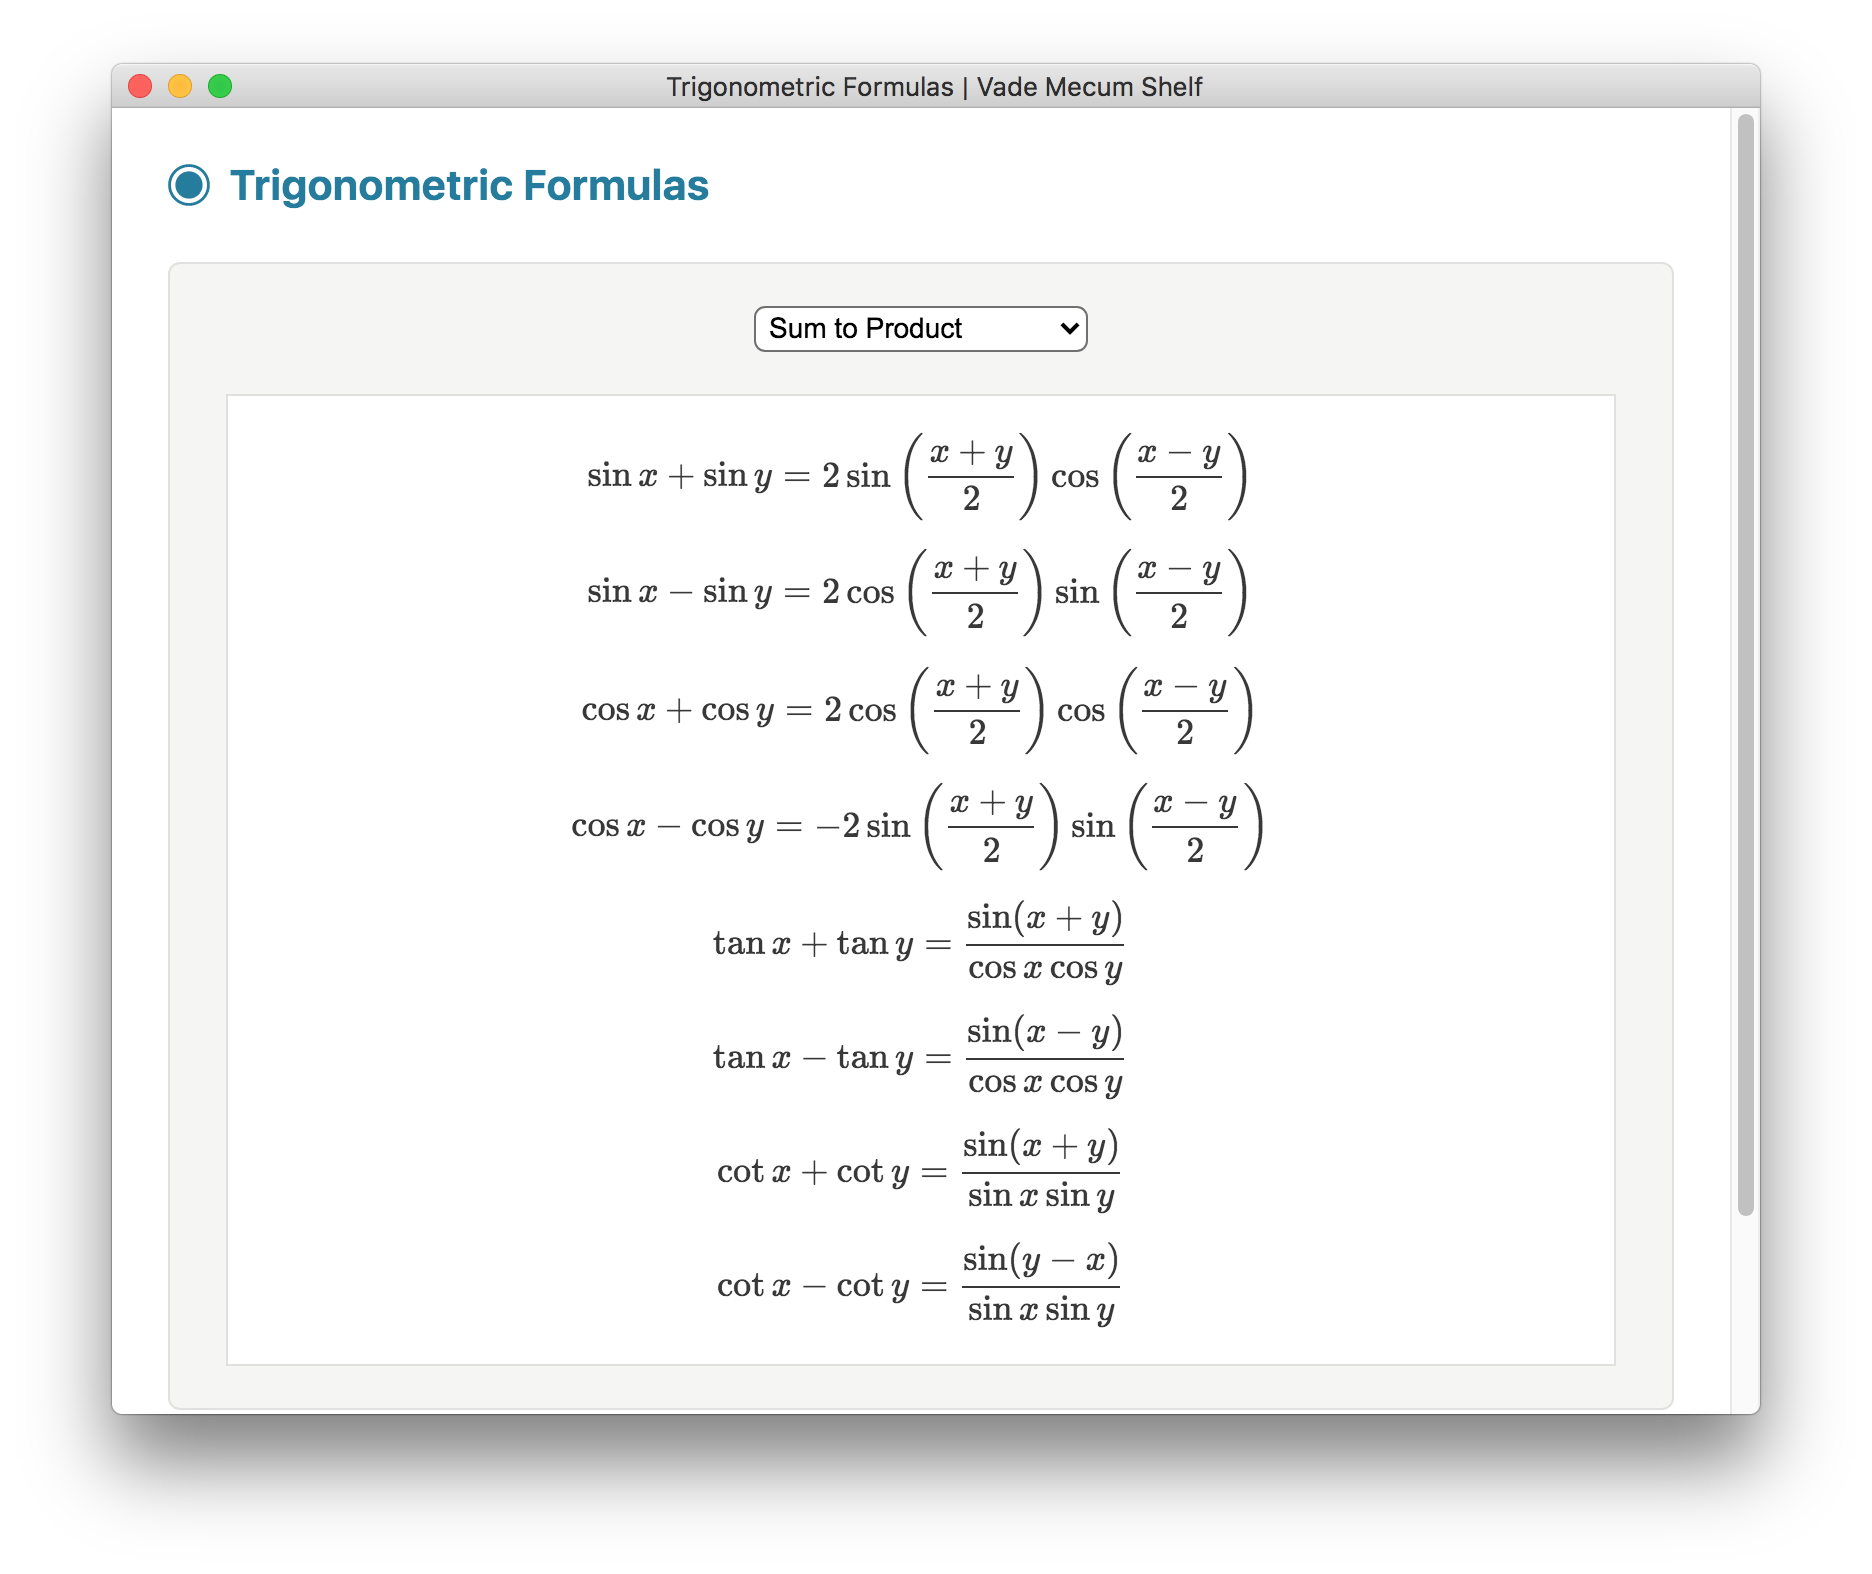 Trigonometric Formulas screenshot